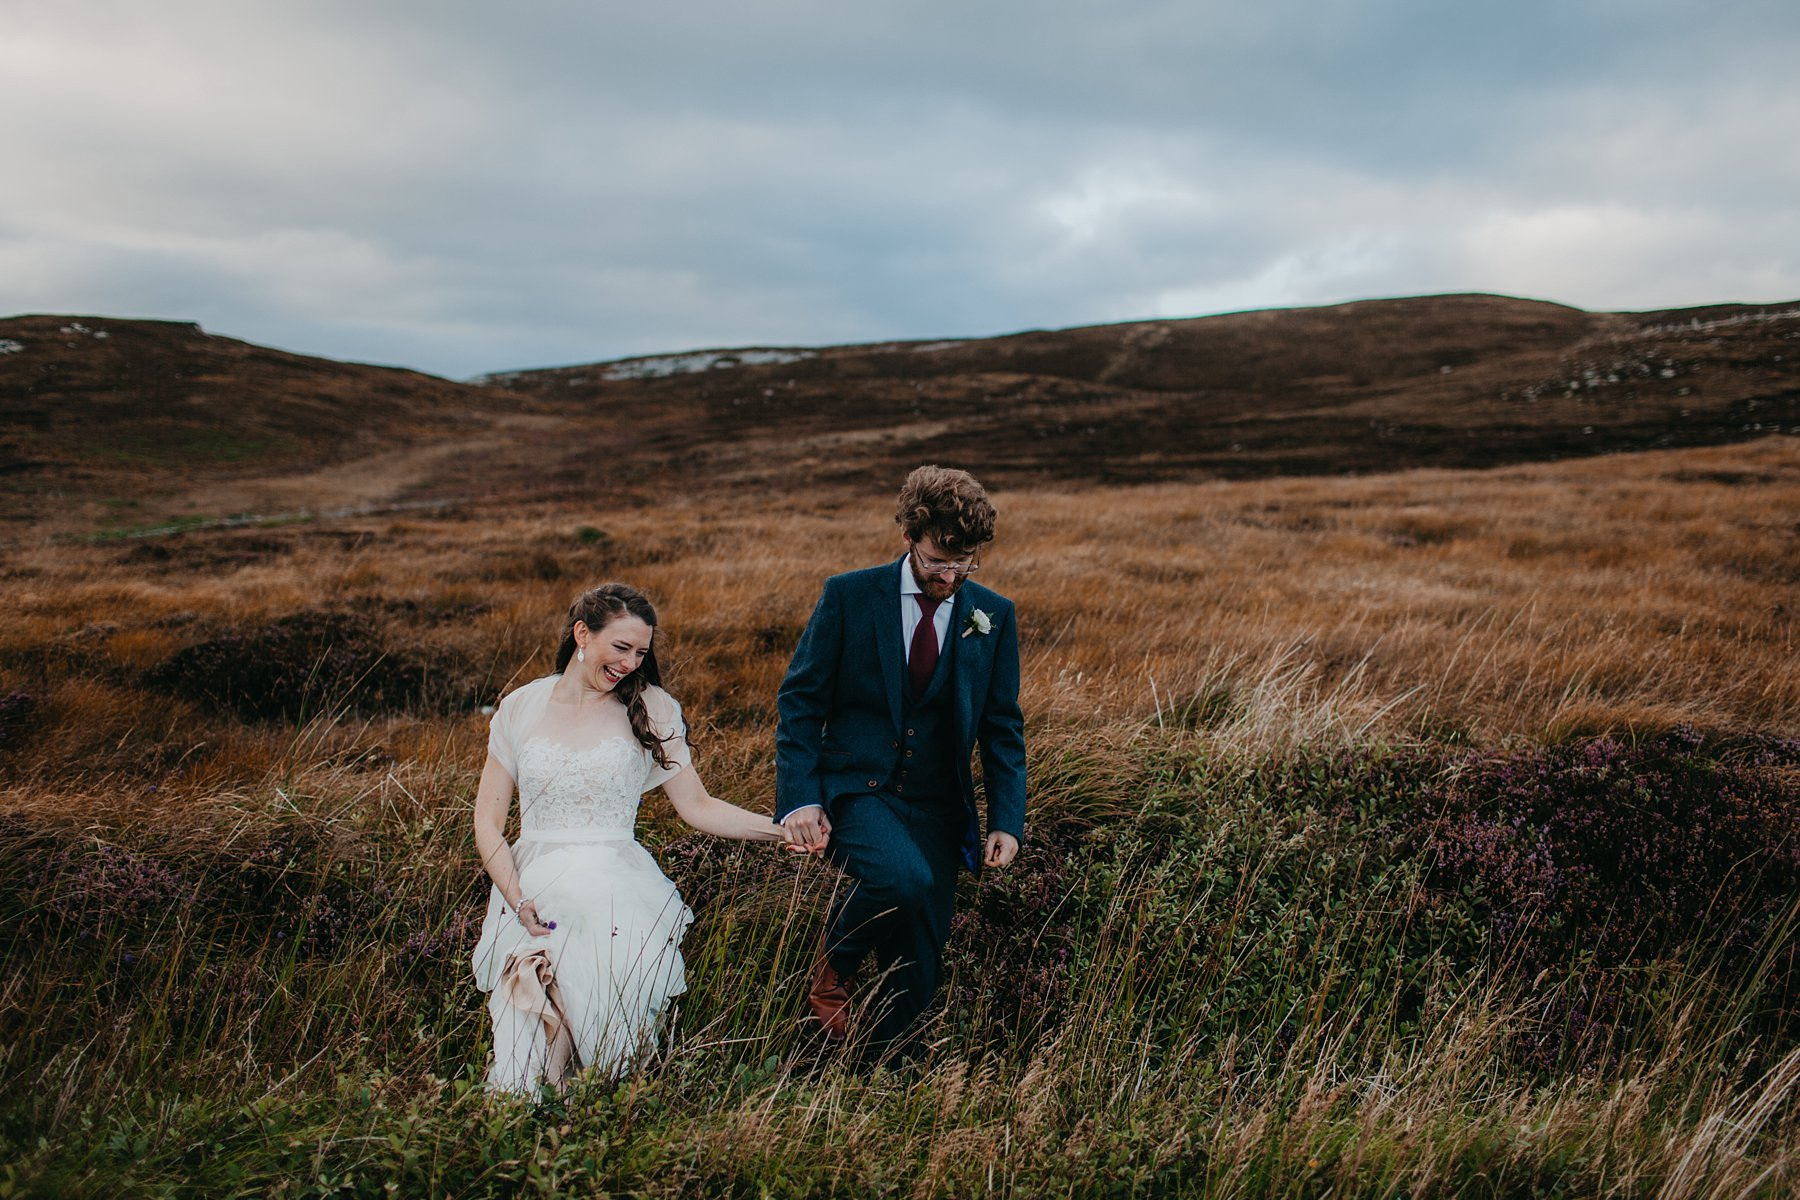 hornhead_donegak_elopement_weddings_0079